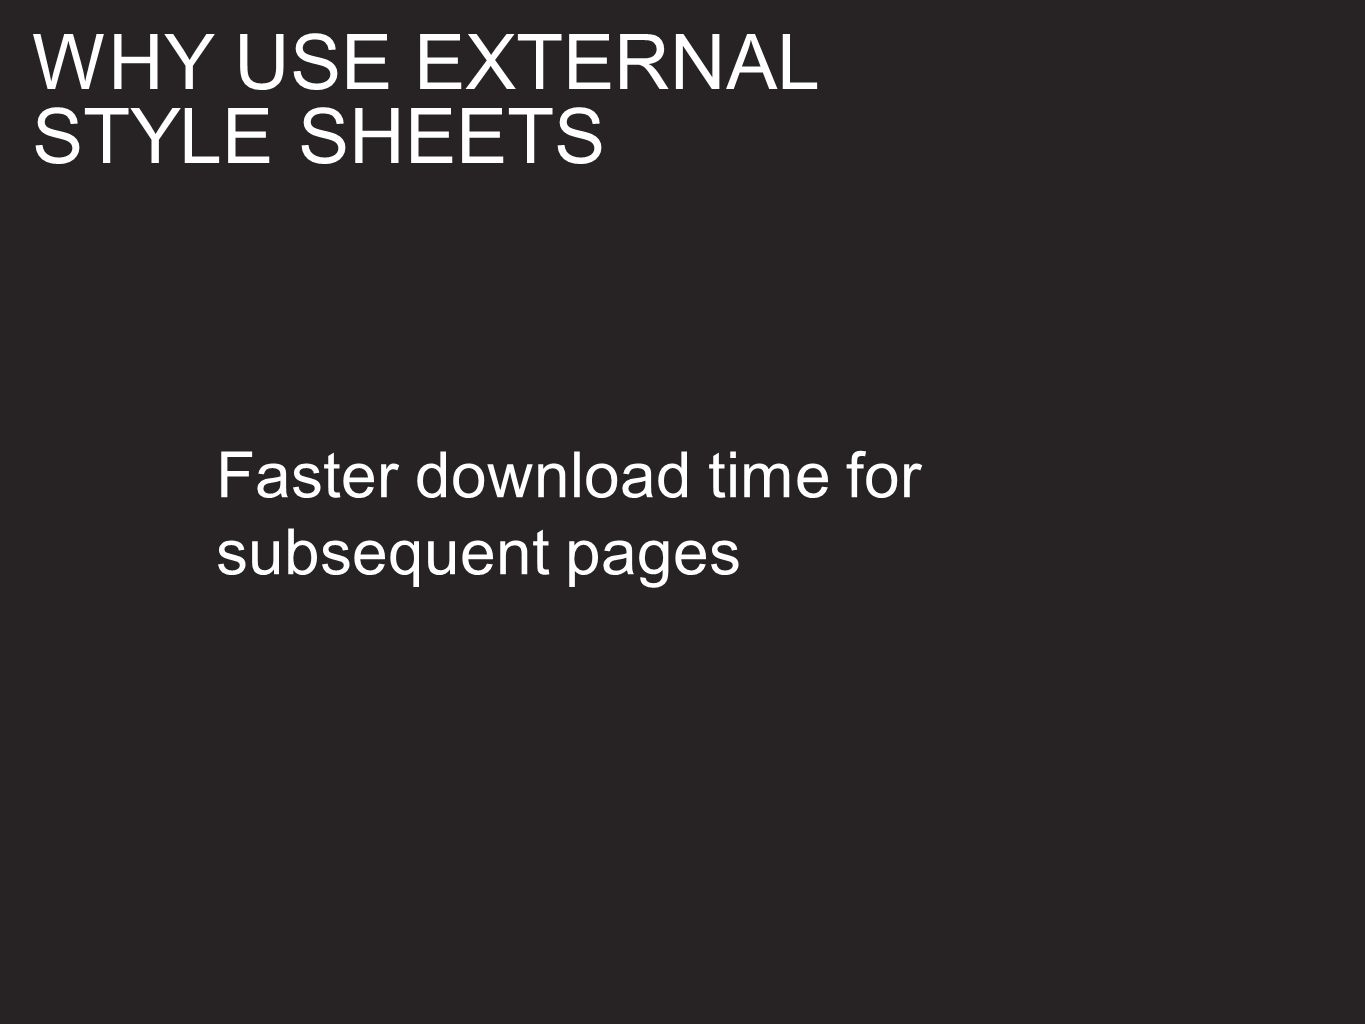 Faster download time for subsequent pages WHY USE EXTERNAL STYLE SHEETS